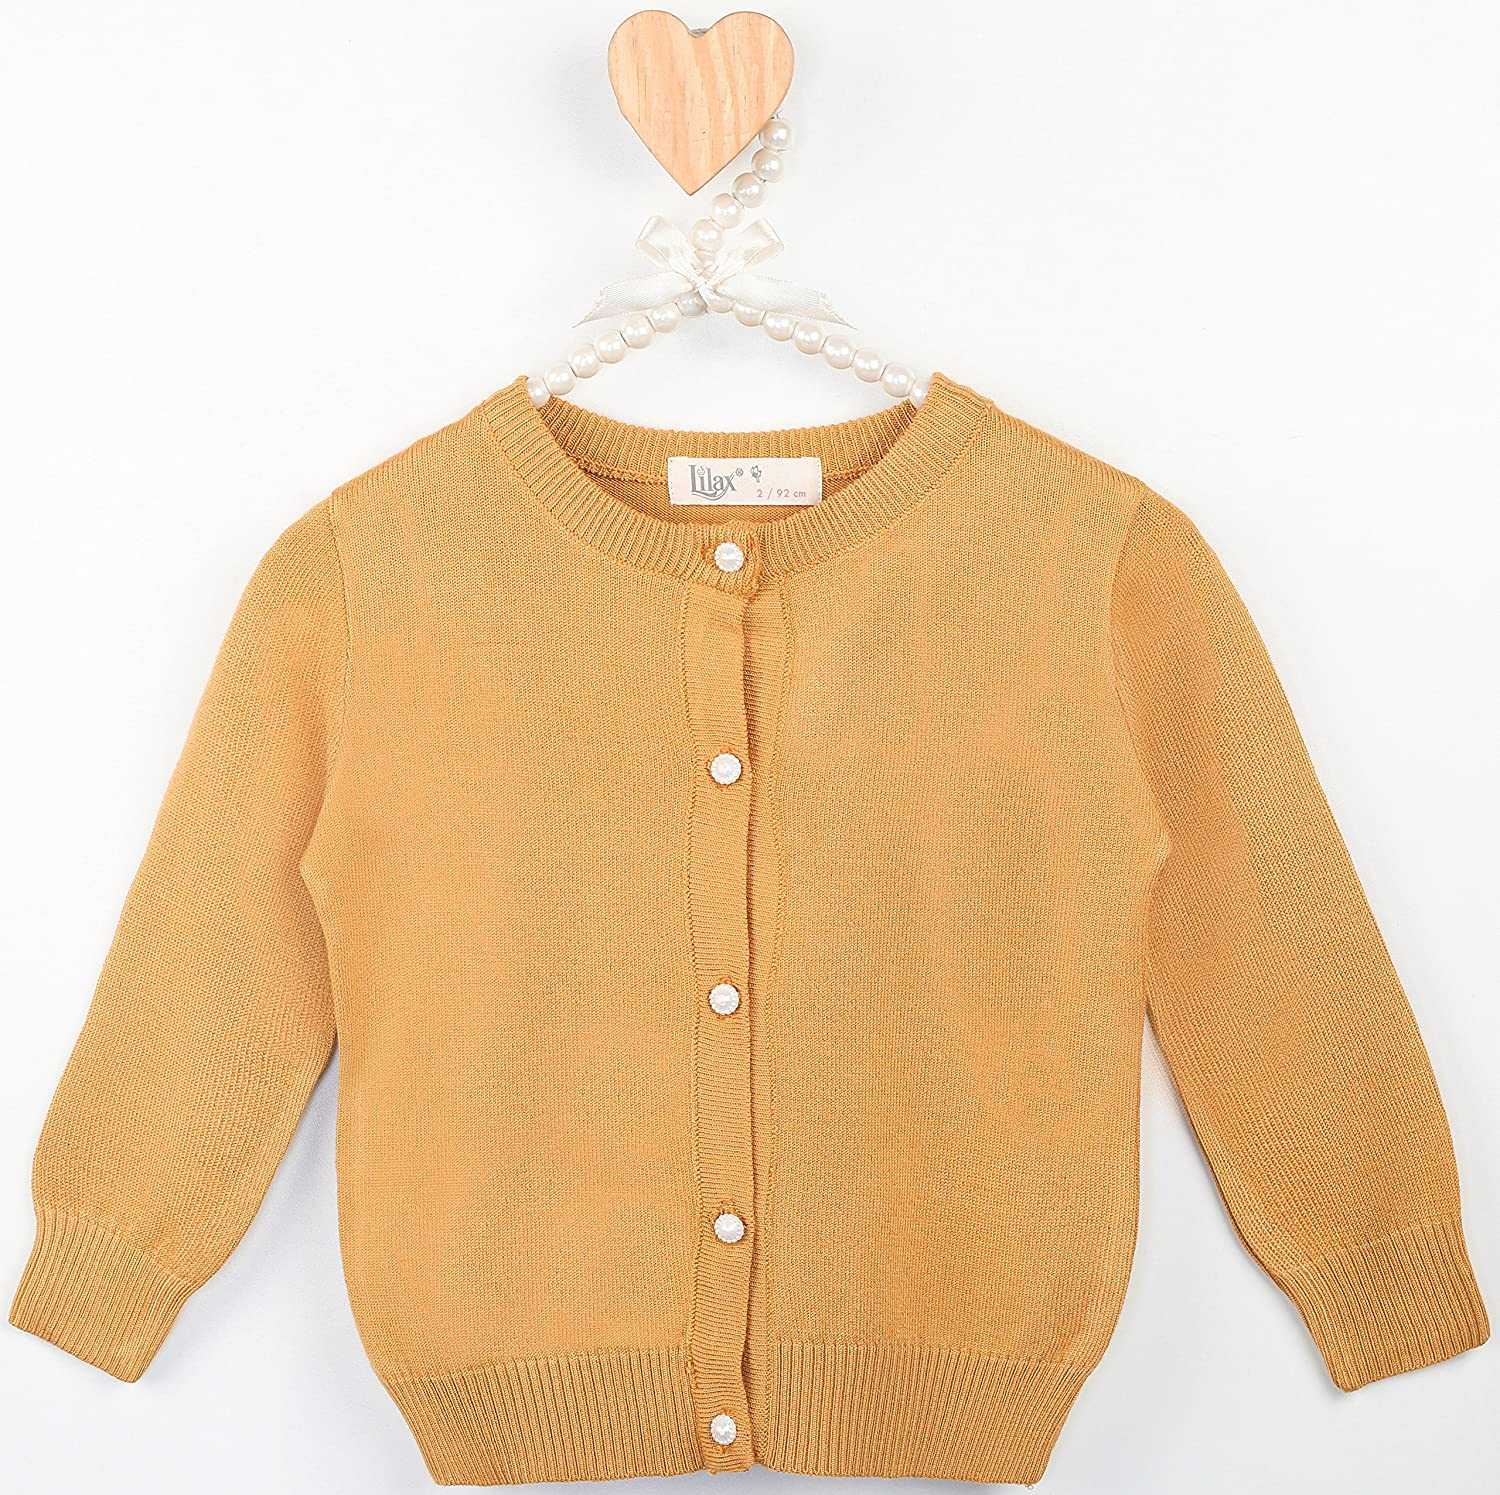 Lilax Little Girls Knit Uniform Cardigan Long Sleeve Sweater